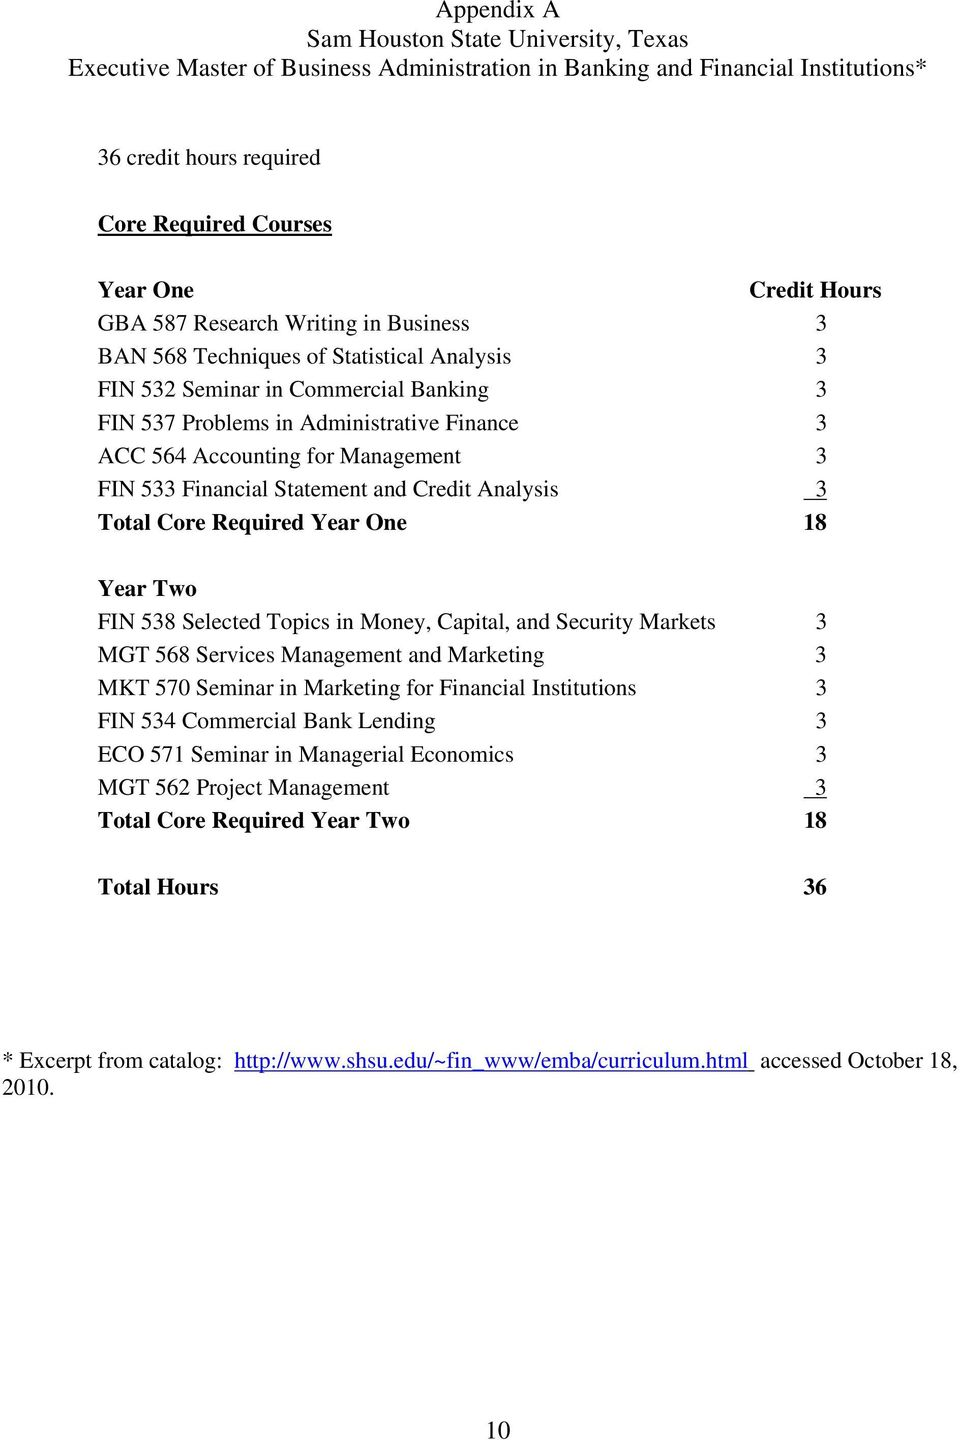 Management 3 FIN 533 Financial Statement and Credit Analysis 3 Total Core Required Year One 18 Year Two FIN 538 Selected Topics in Money, Capital, and Security Markets 3 MGT 568 Services Management